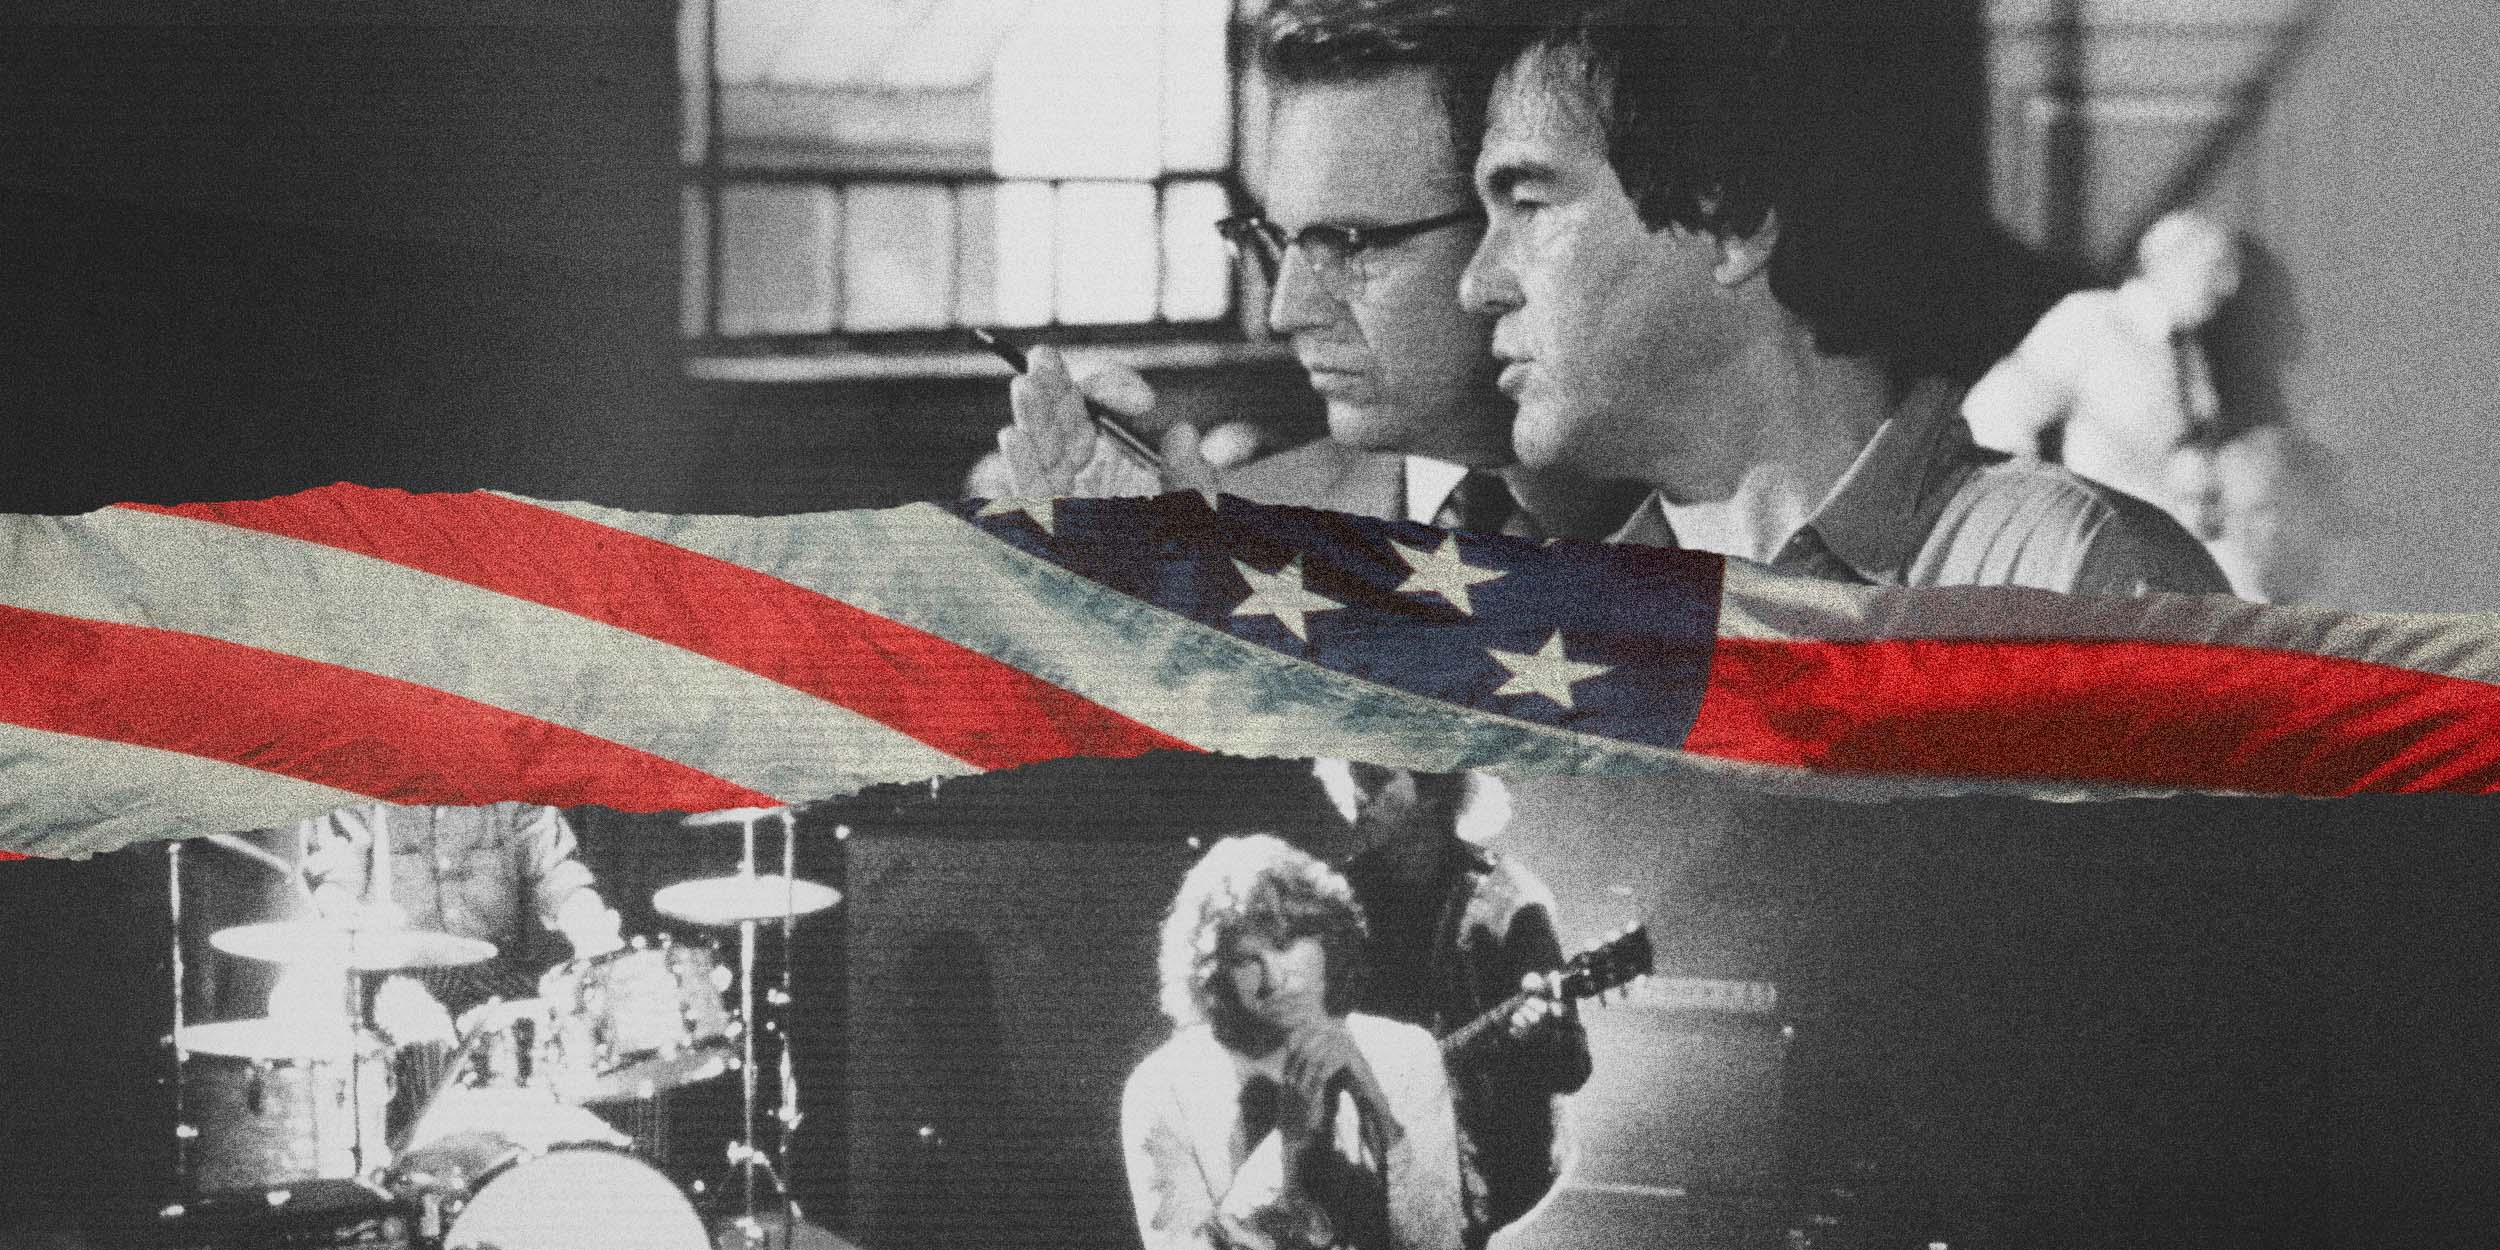 Oliver Stone captured 2021's cultural fault lines in 1991 with 'JFK,' 'The Doors'